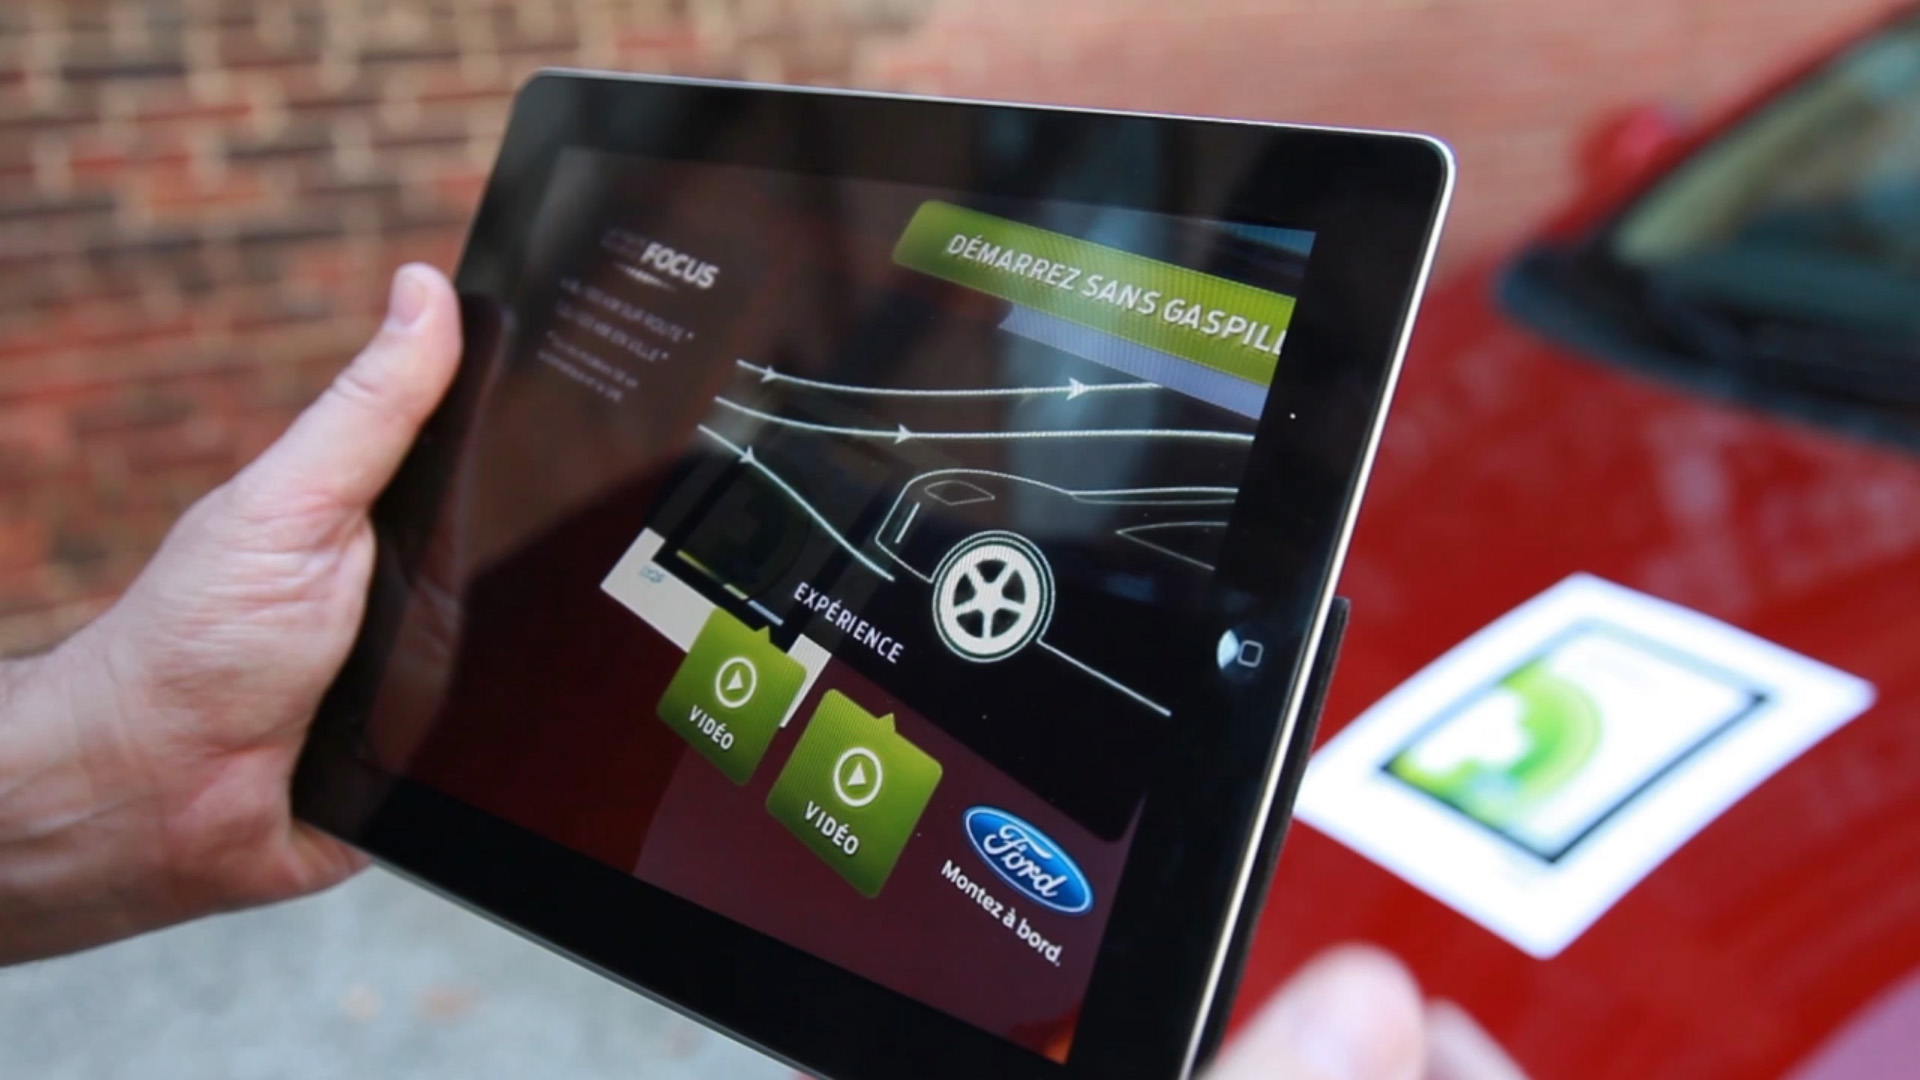 MOBILE AUGMENTED REALITY FORD FOCUS (2015)